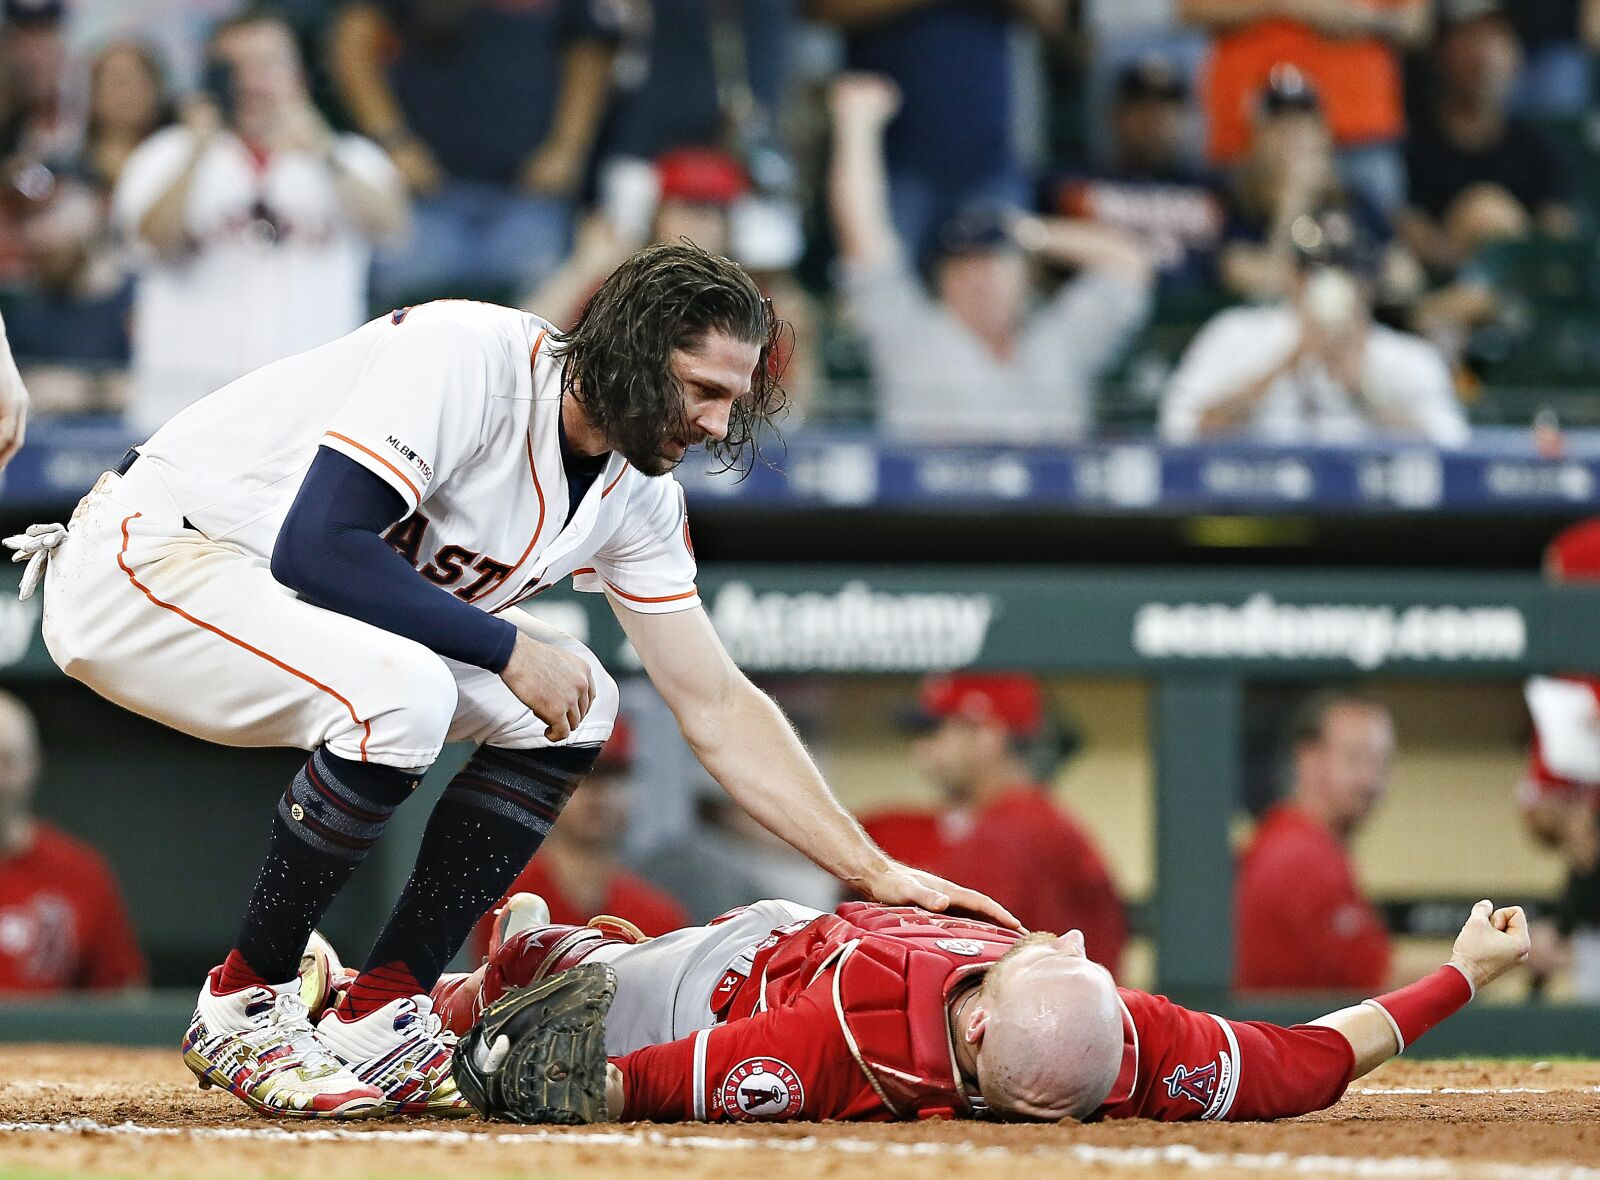 Astros: Marisnick's beaning raises issue with MLB unwritten rules